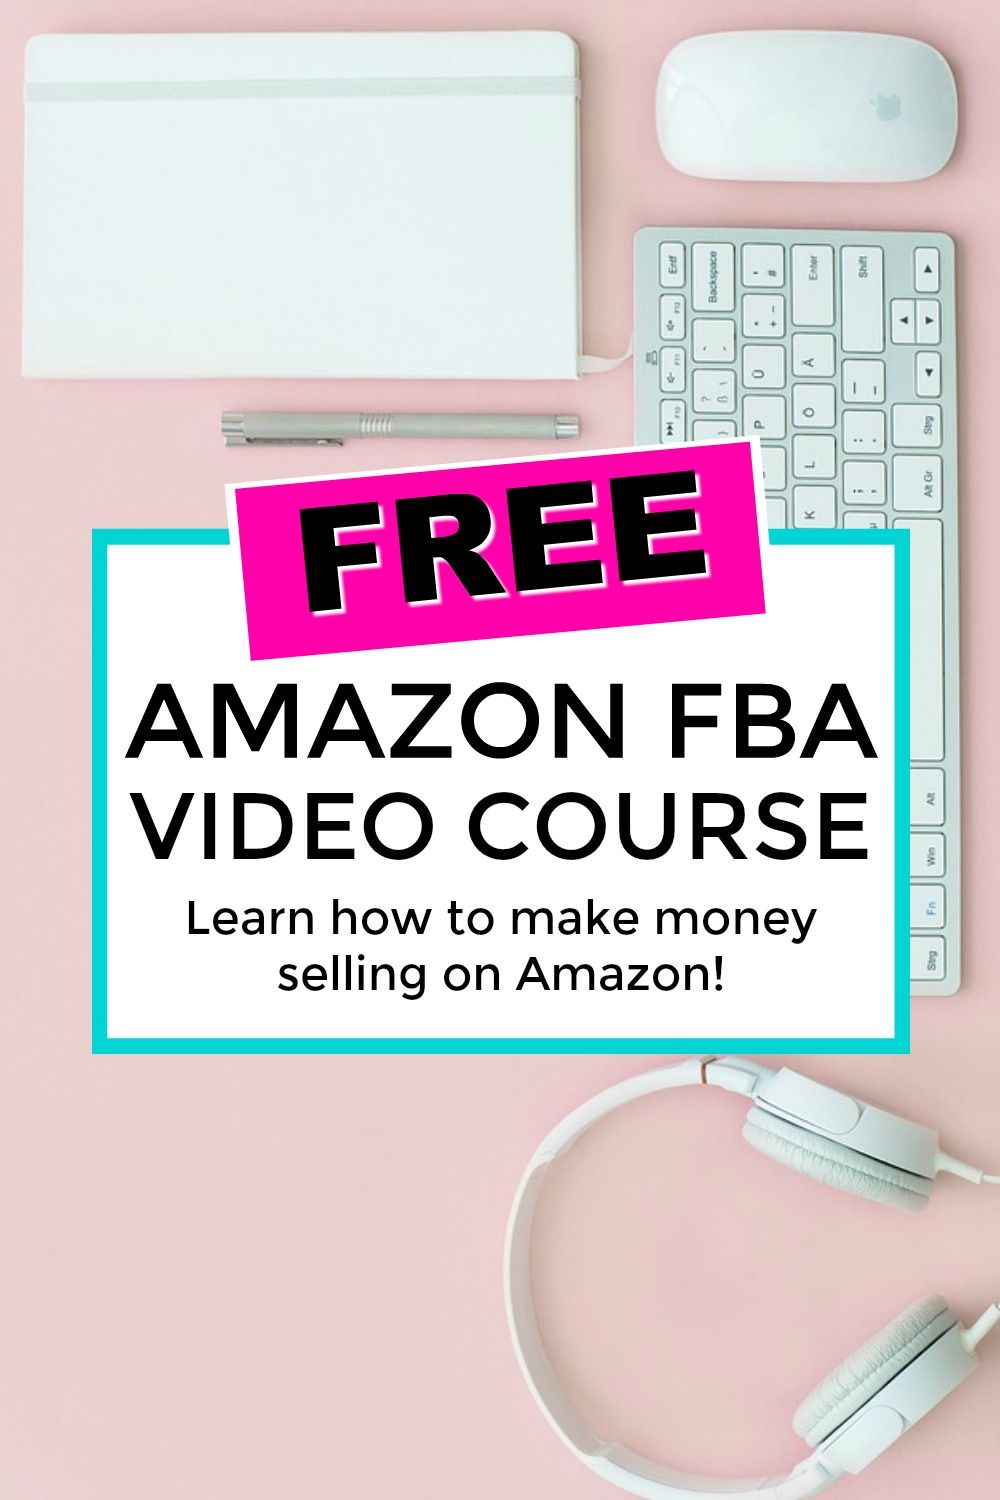 The first year that Jessica's family ran their Amazon FBA